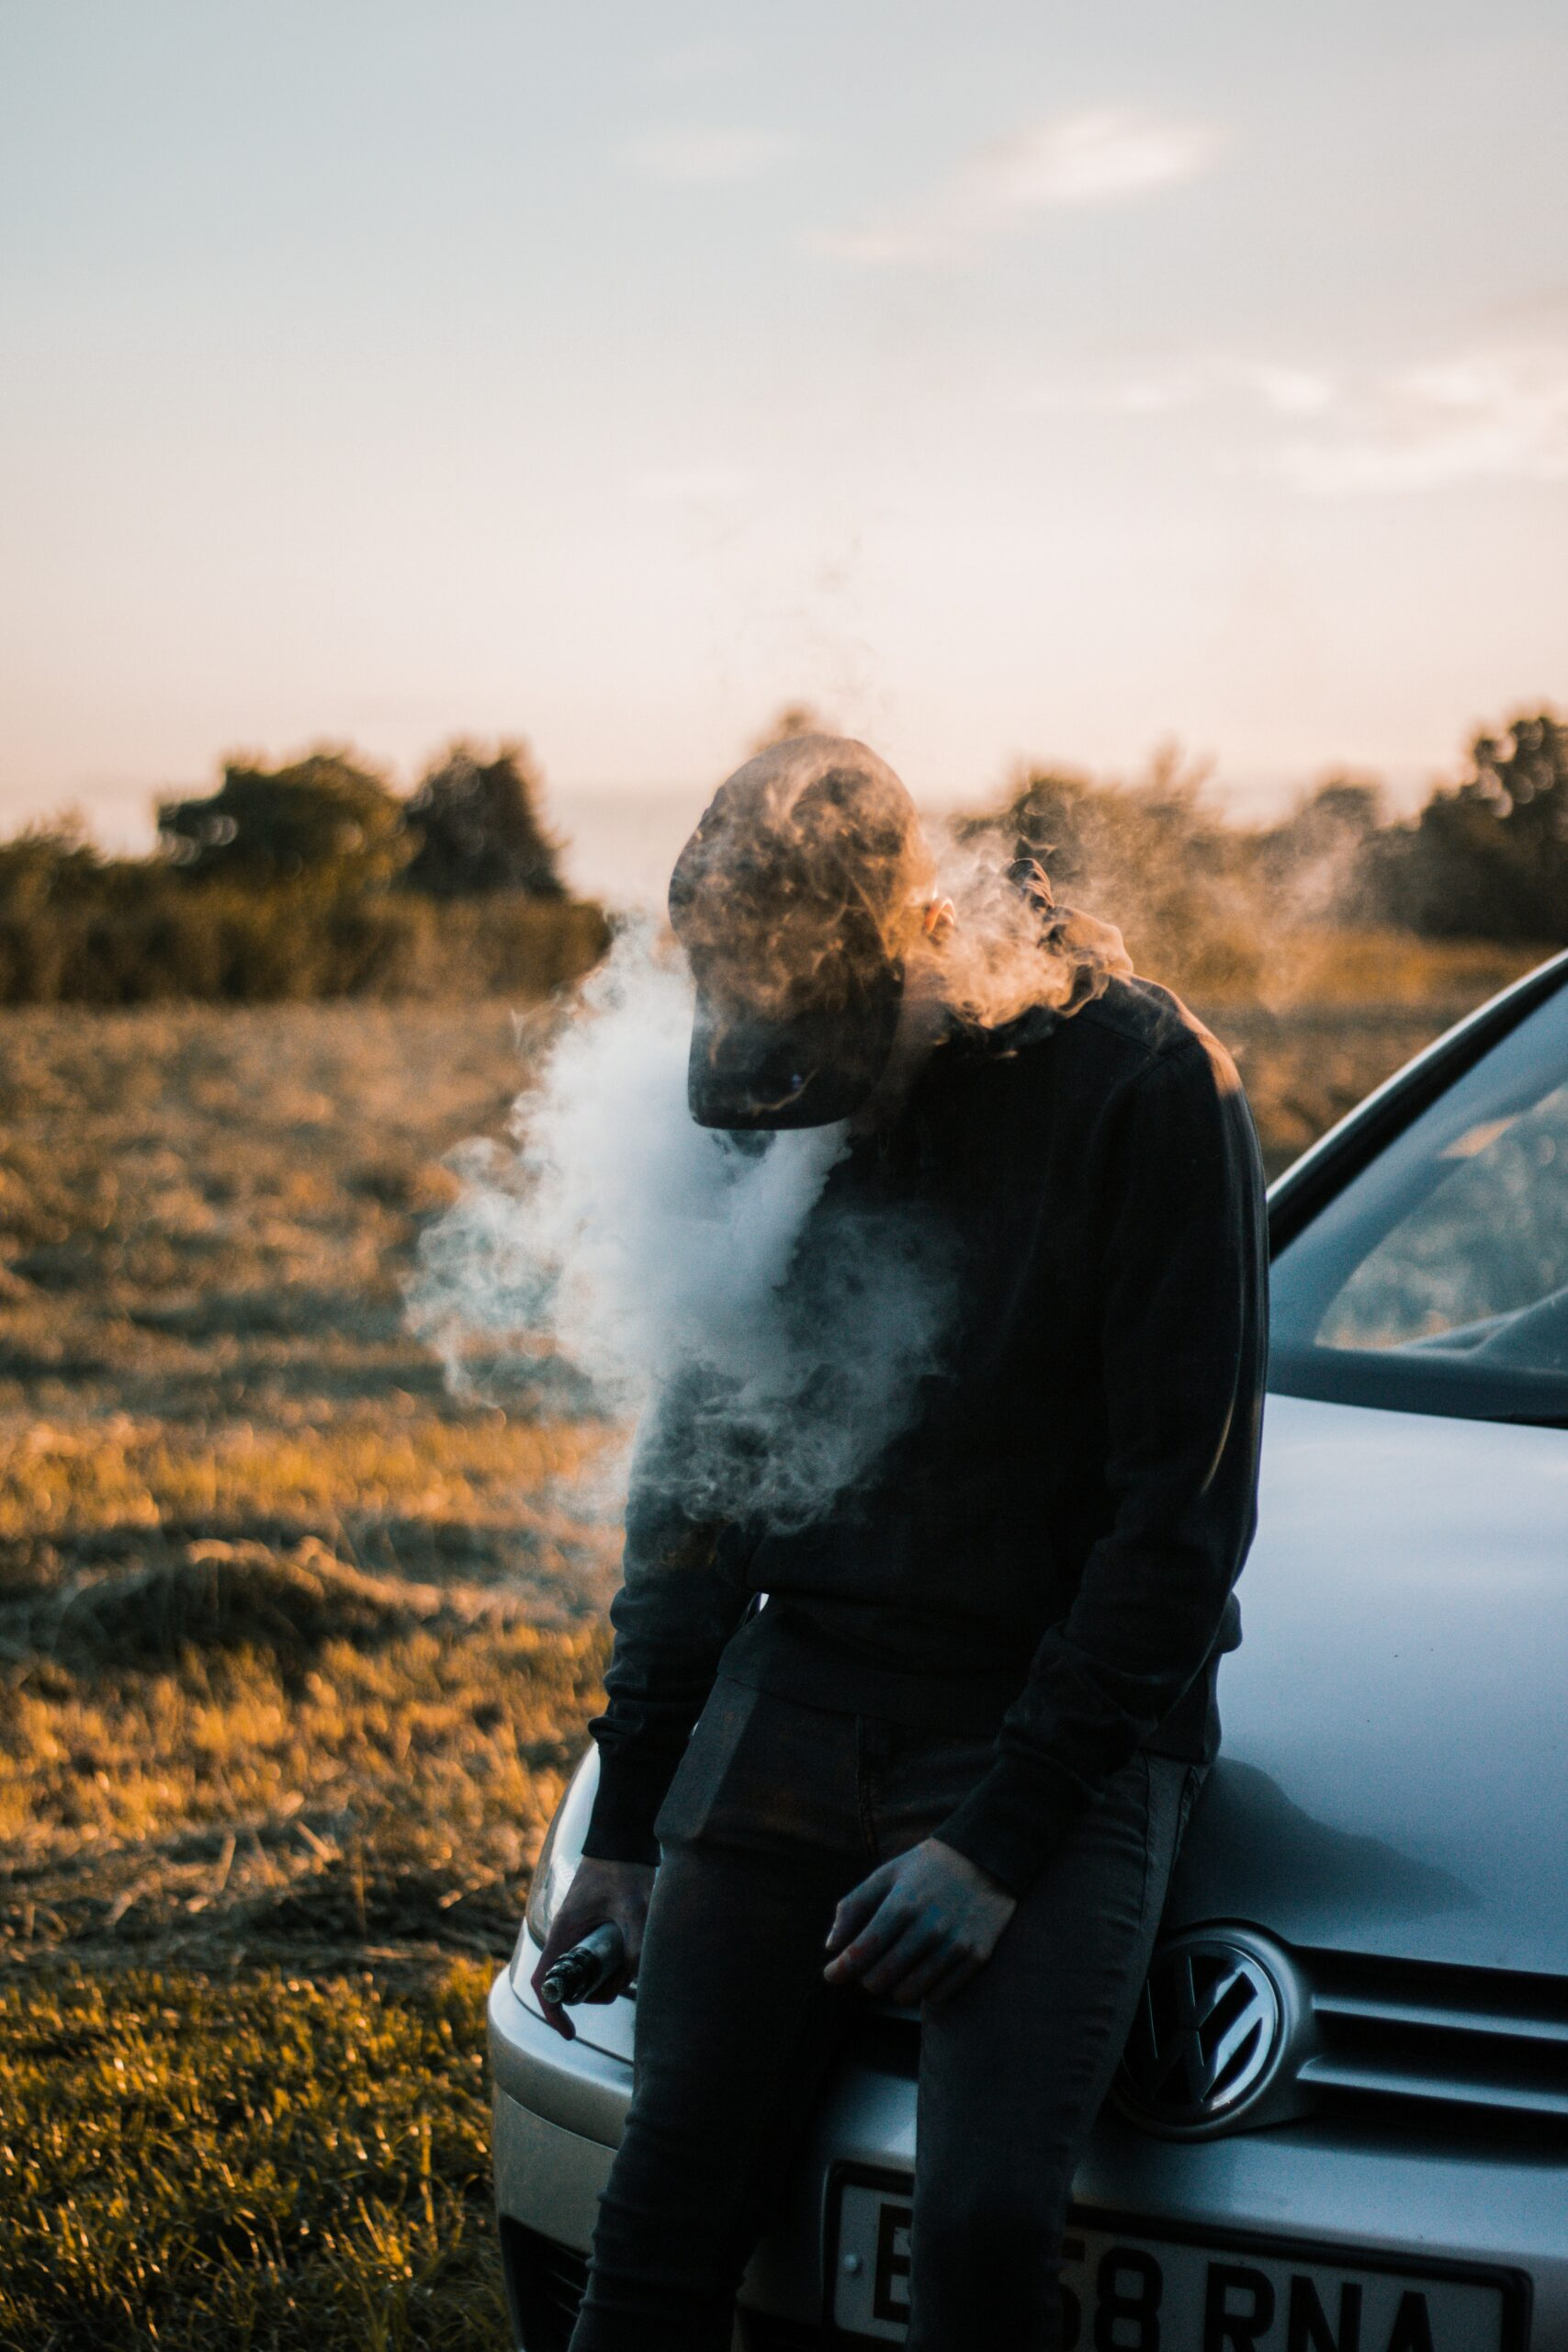 boy vaping sitting on car